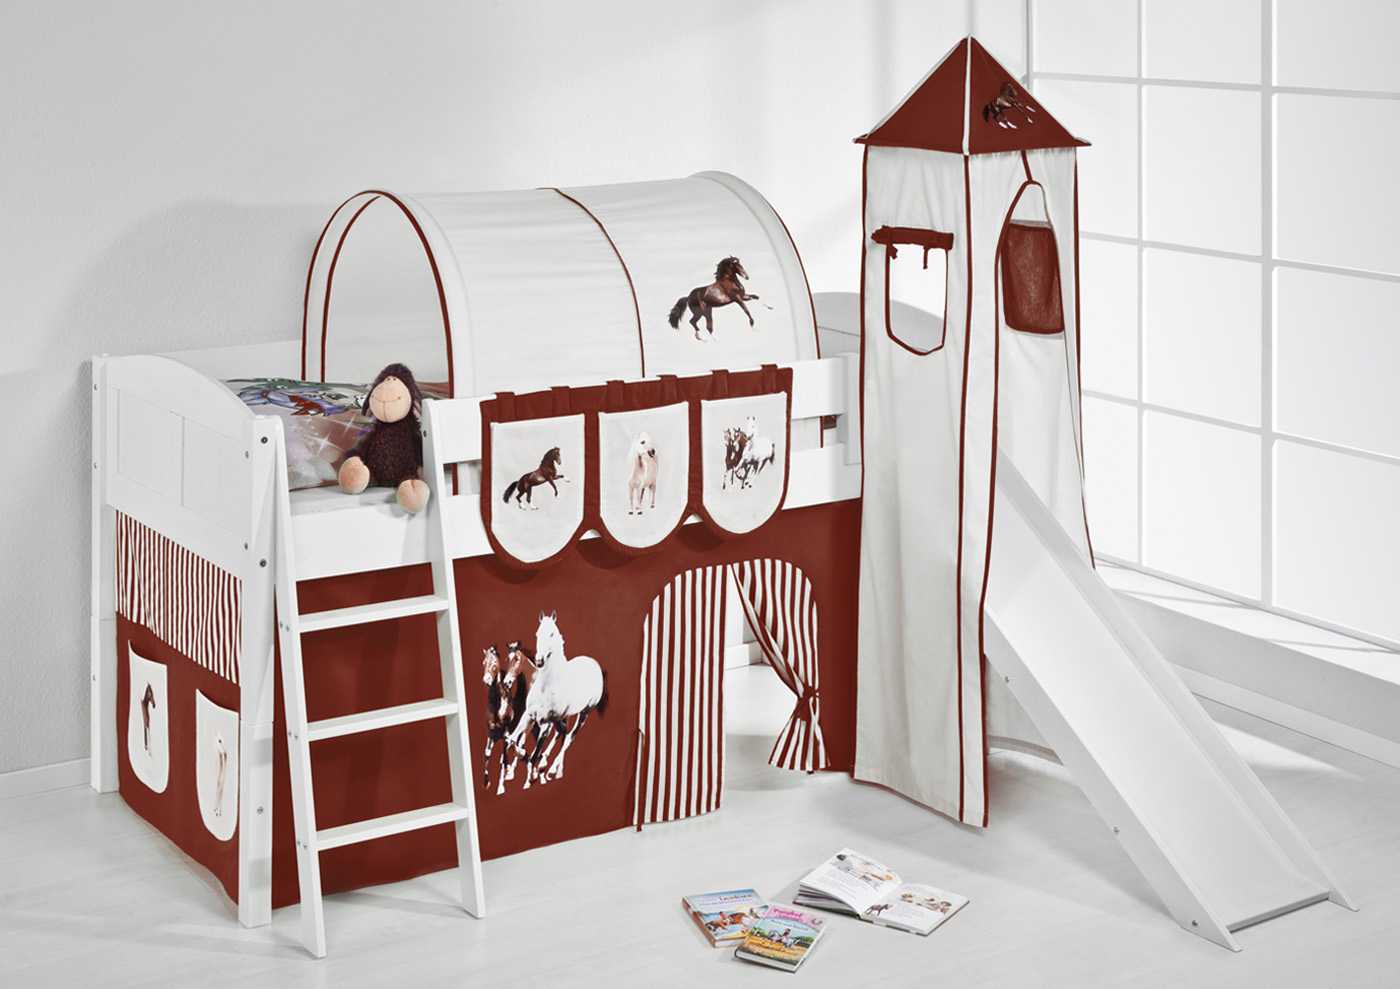 spielbett hochbett kinderbett kinder bett mit turm und rutsche 4106. Black Bedroom Furniture Sets. Home Design Ideas